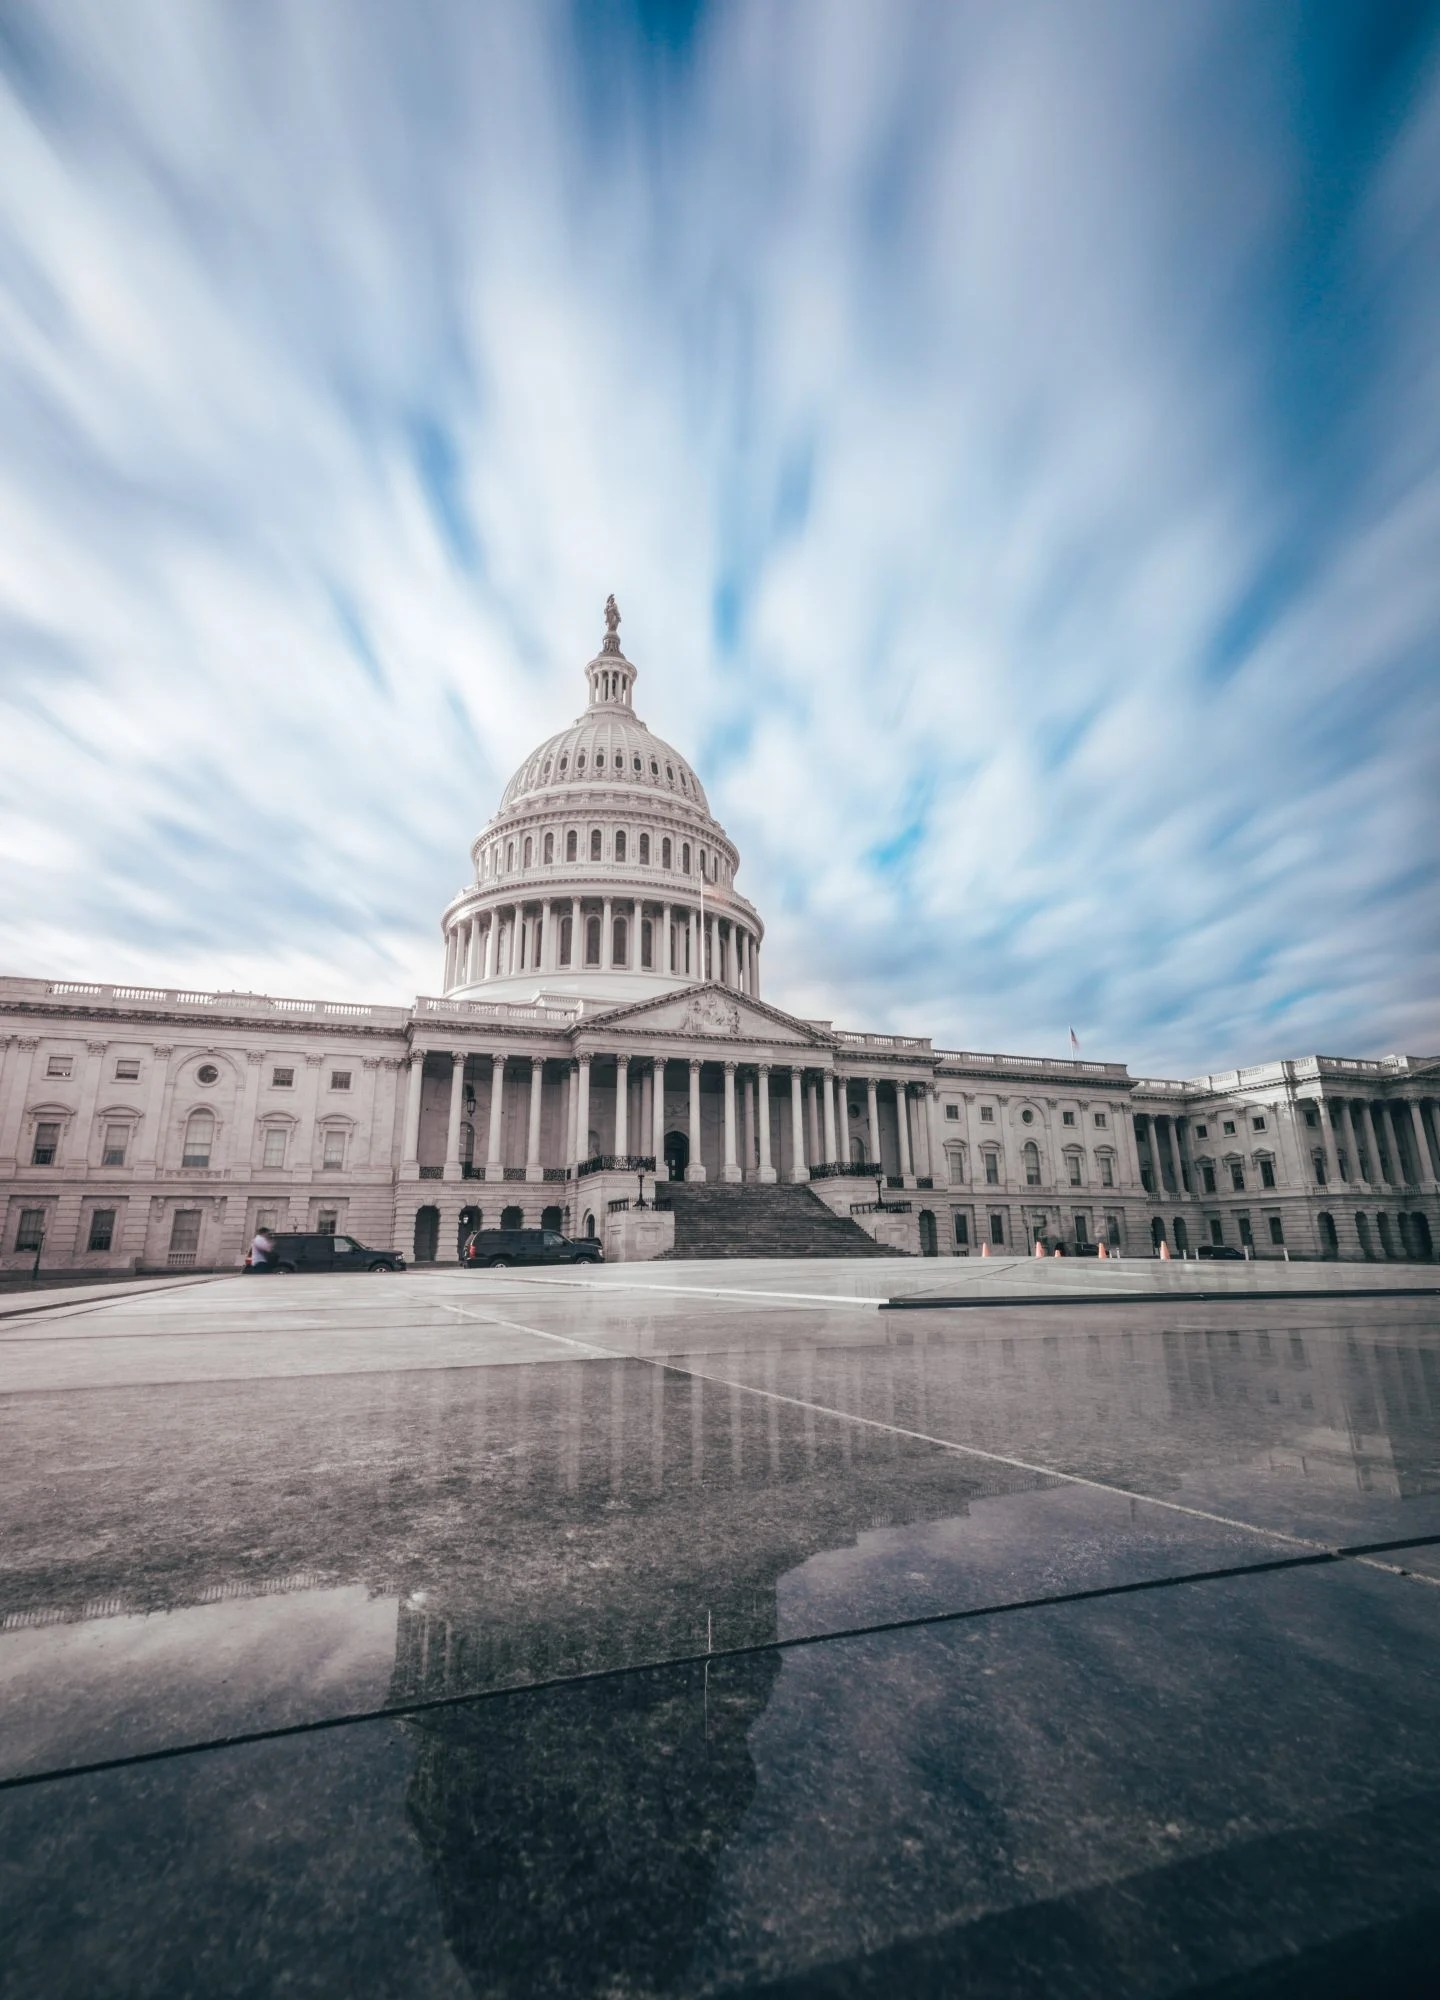 Photos Of The United States Capitol In Washington D C